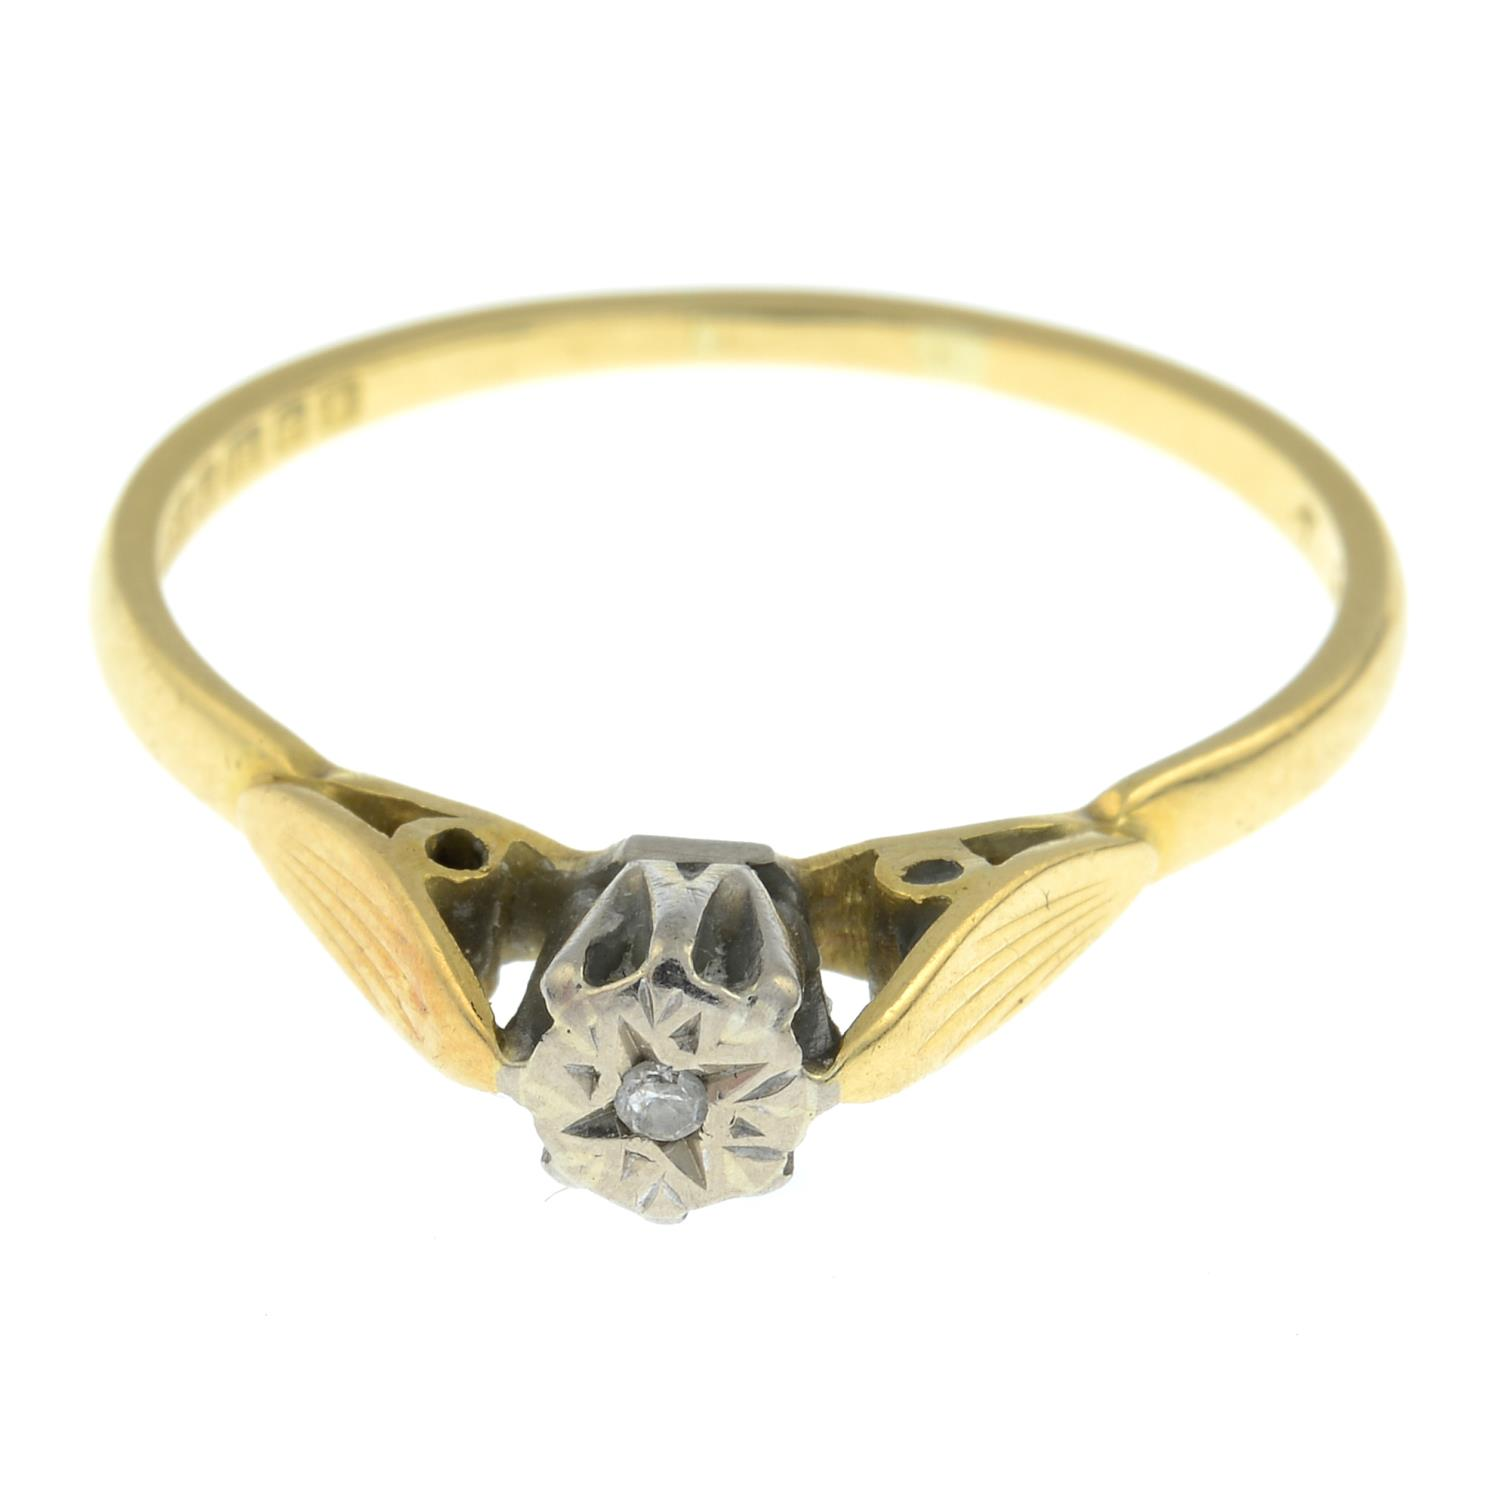 An 18ct gold single stone ring, - Image 2 of 3